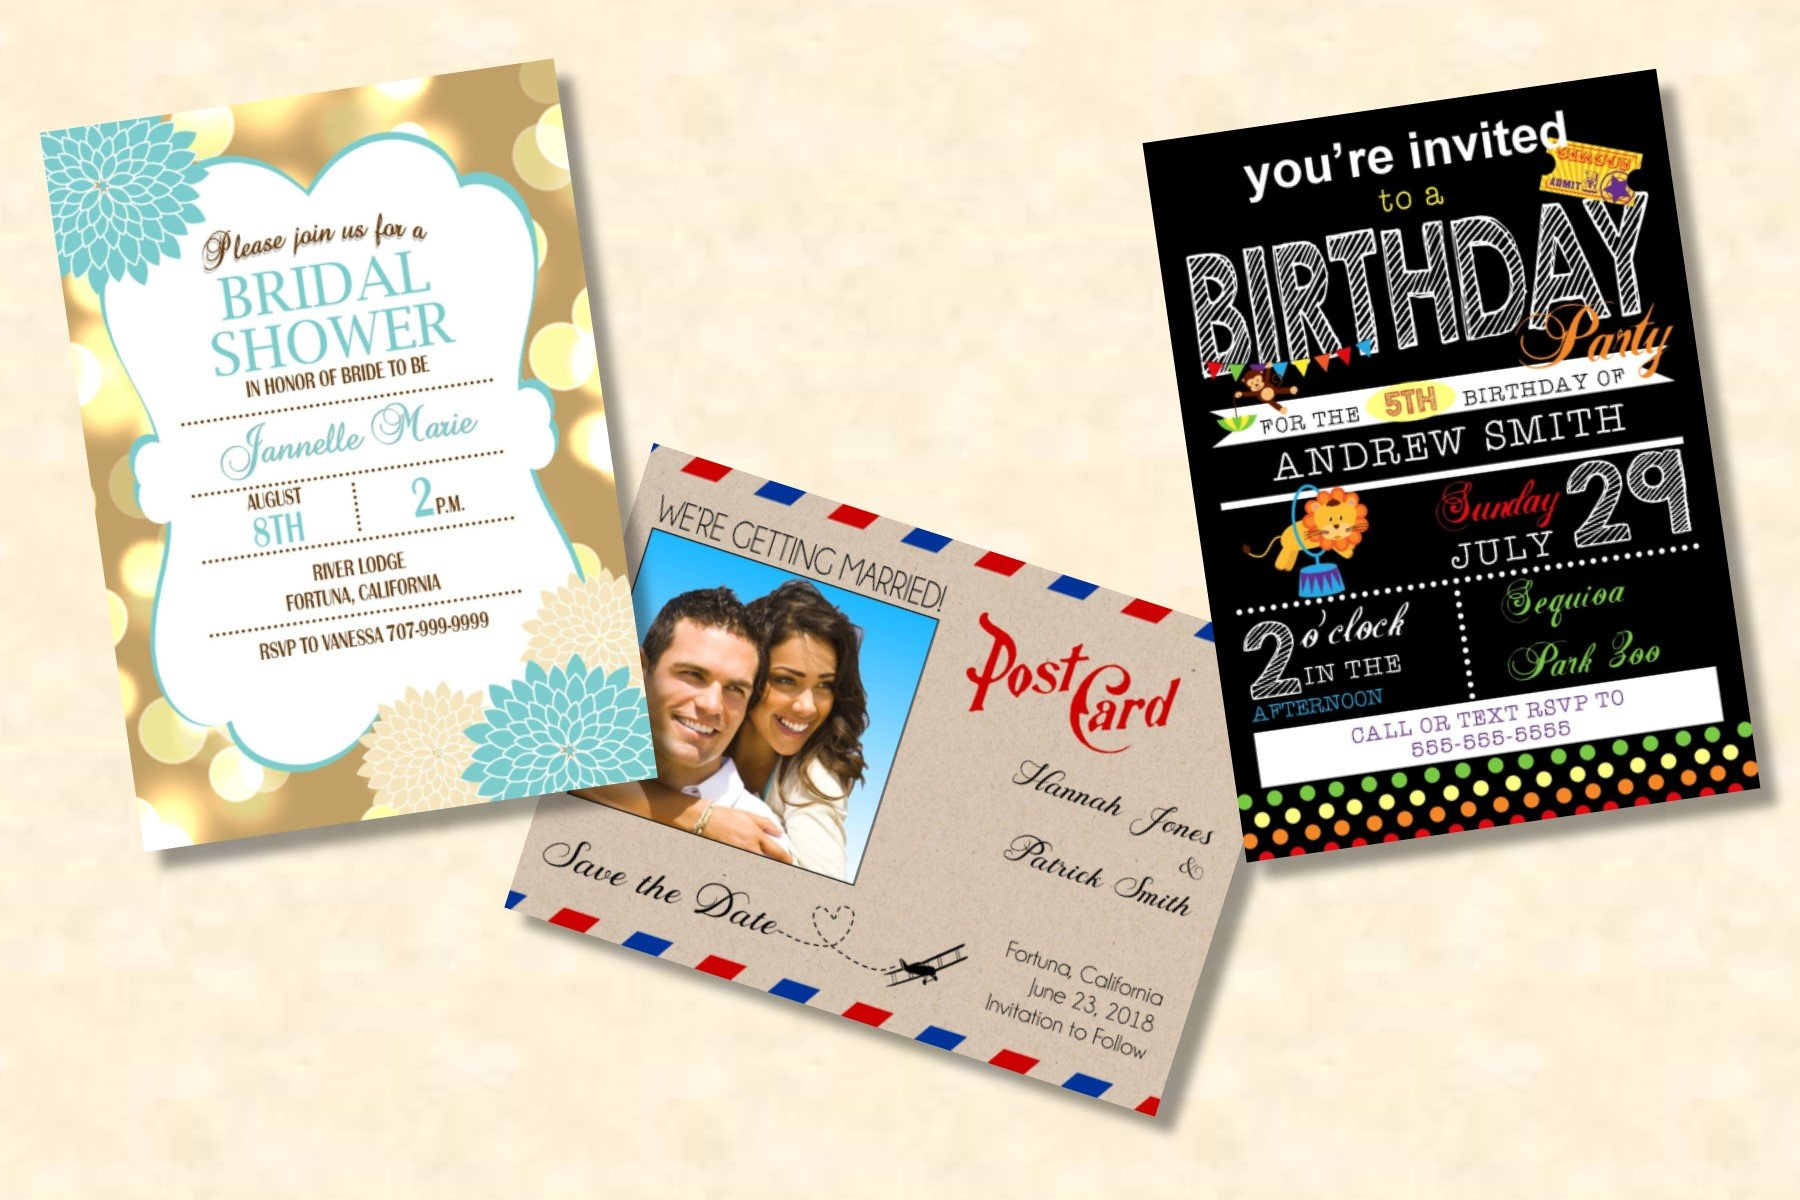 Postcard & Invitation Full or No Bleed Pricing 5x7 Glossy